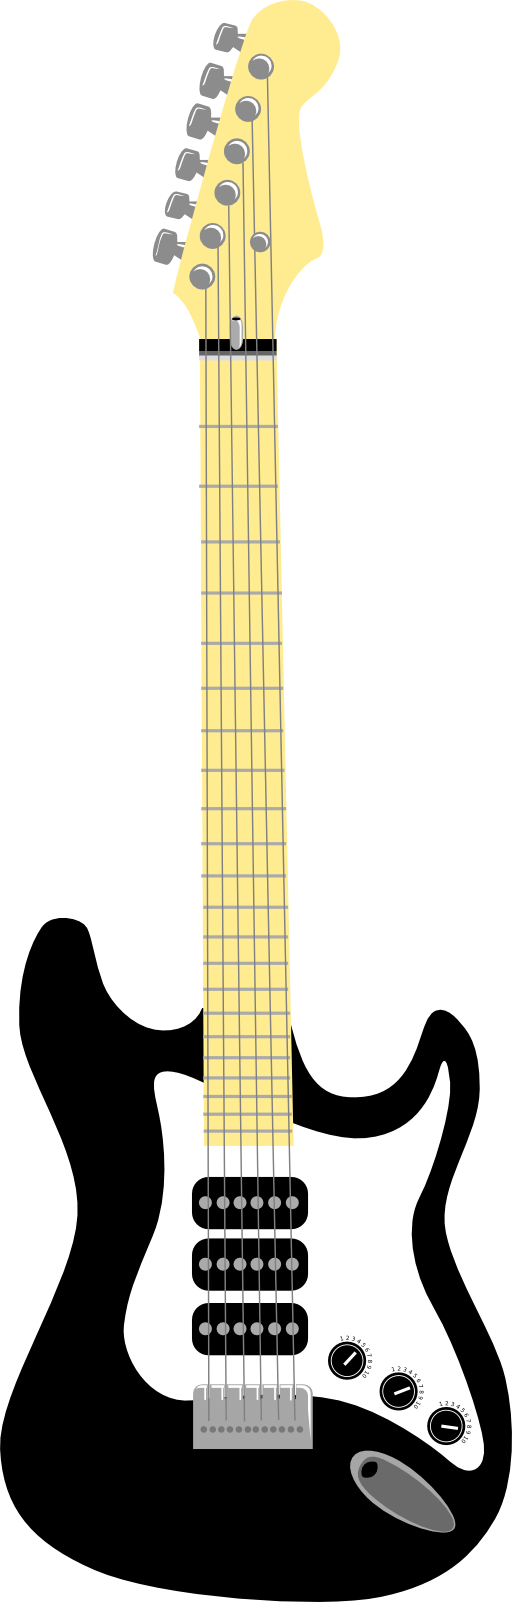 Guitar clipart tropical. Free art images download